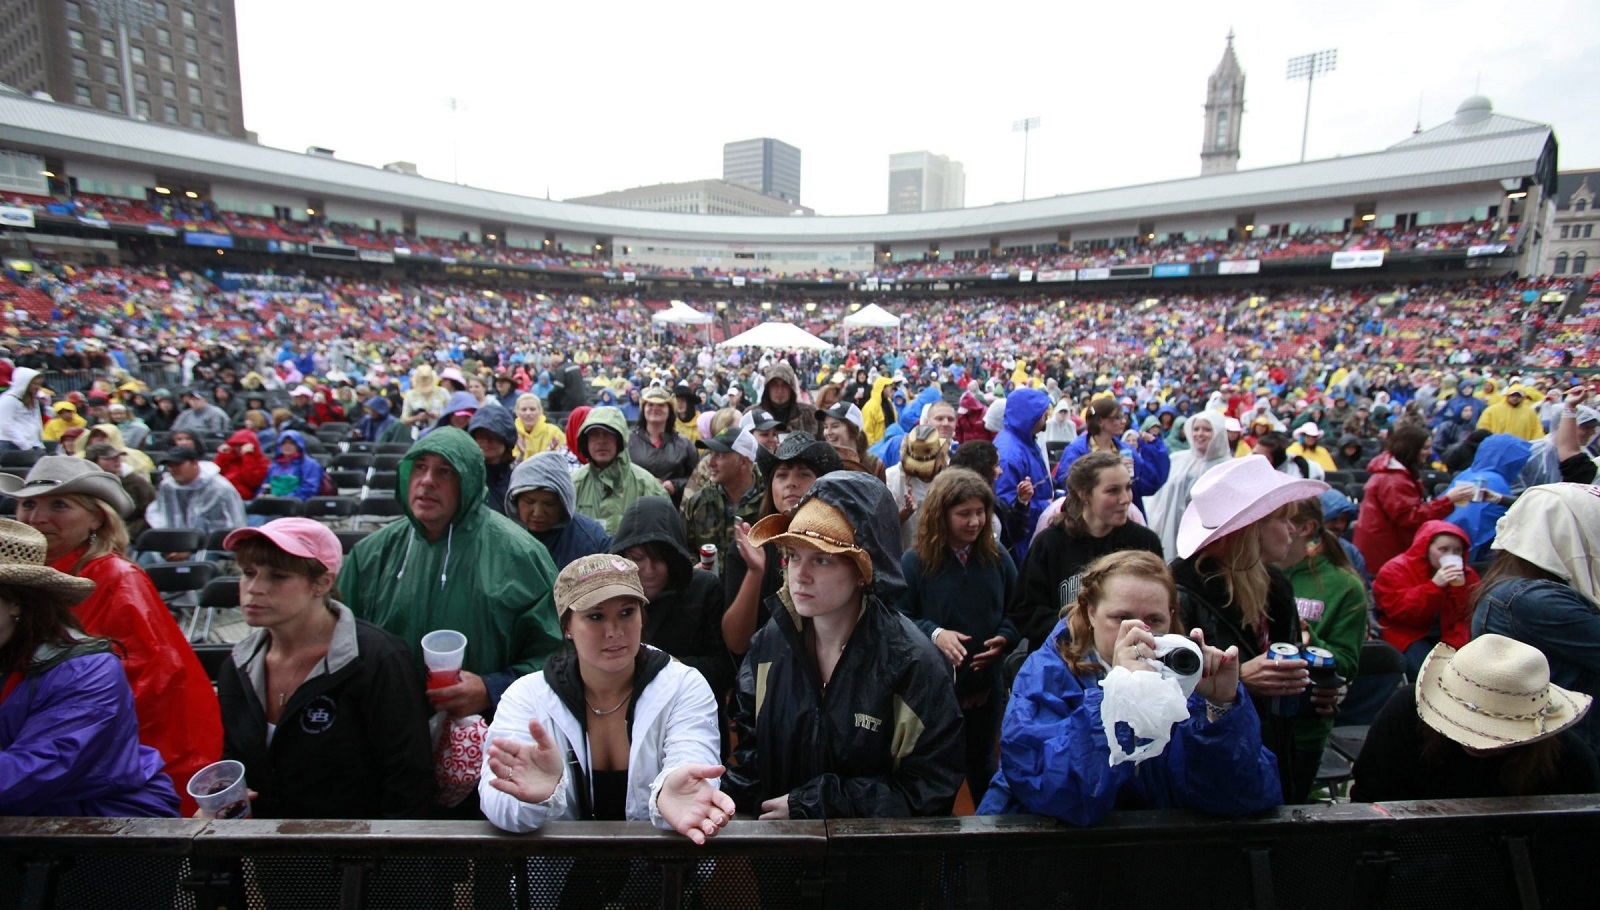 Despite threats of strong storms, Tim O'Shei reassures fans that the Taste of Country is expected to go on as scheduled. (Harry Scull Jr./Buffalo News file photo)